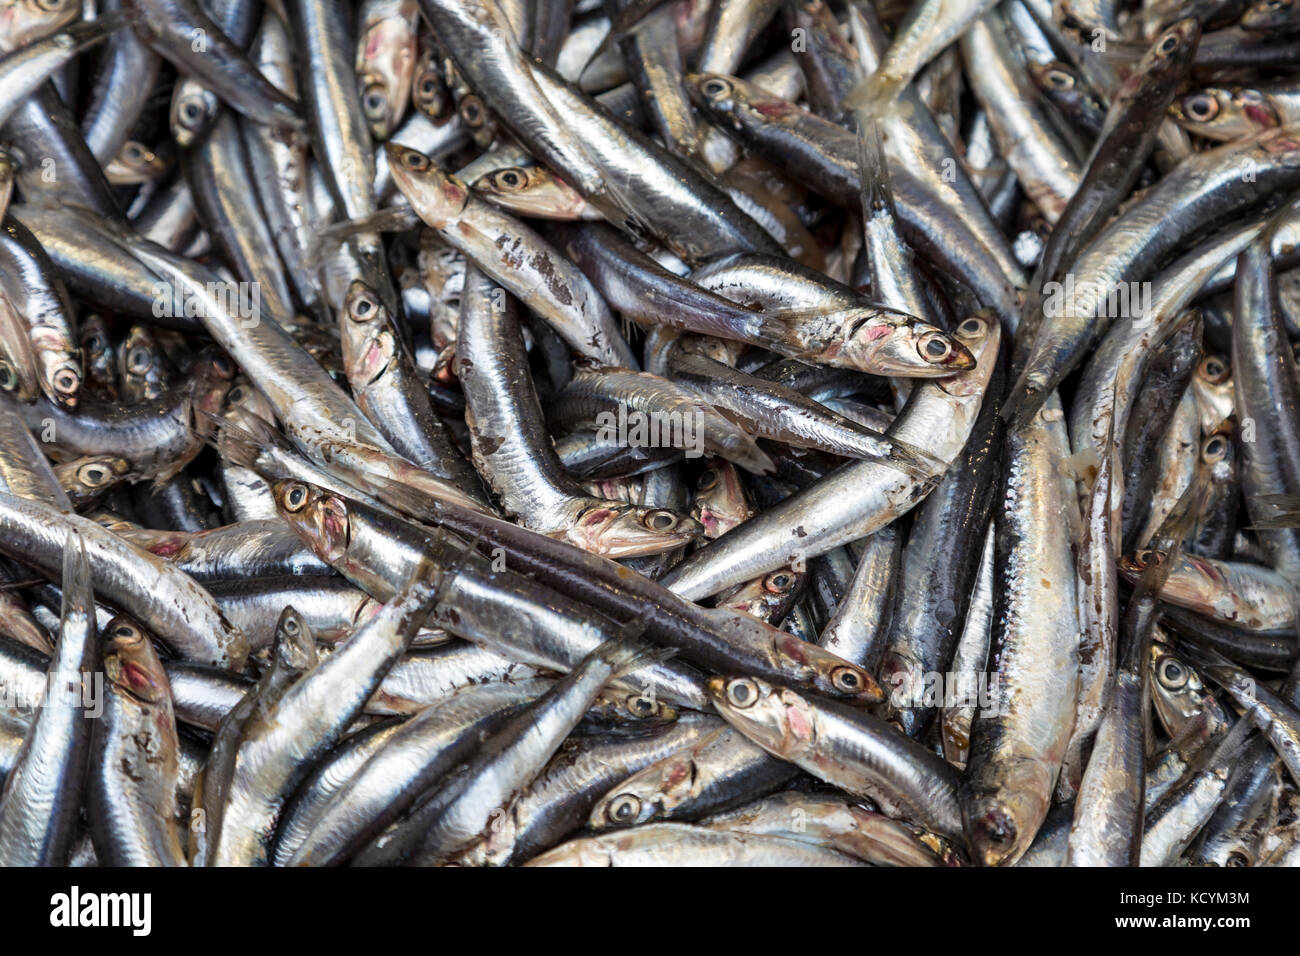 Sardines for sale at the fish market in Vieux Port, Marseille, France - Stock Image